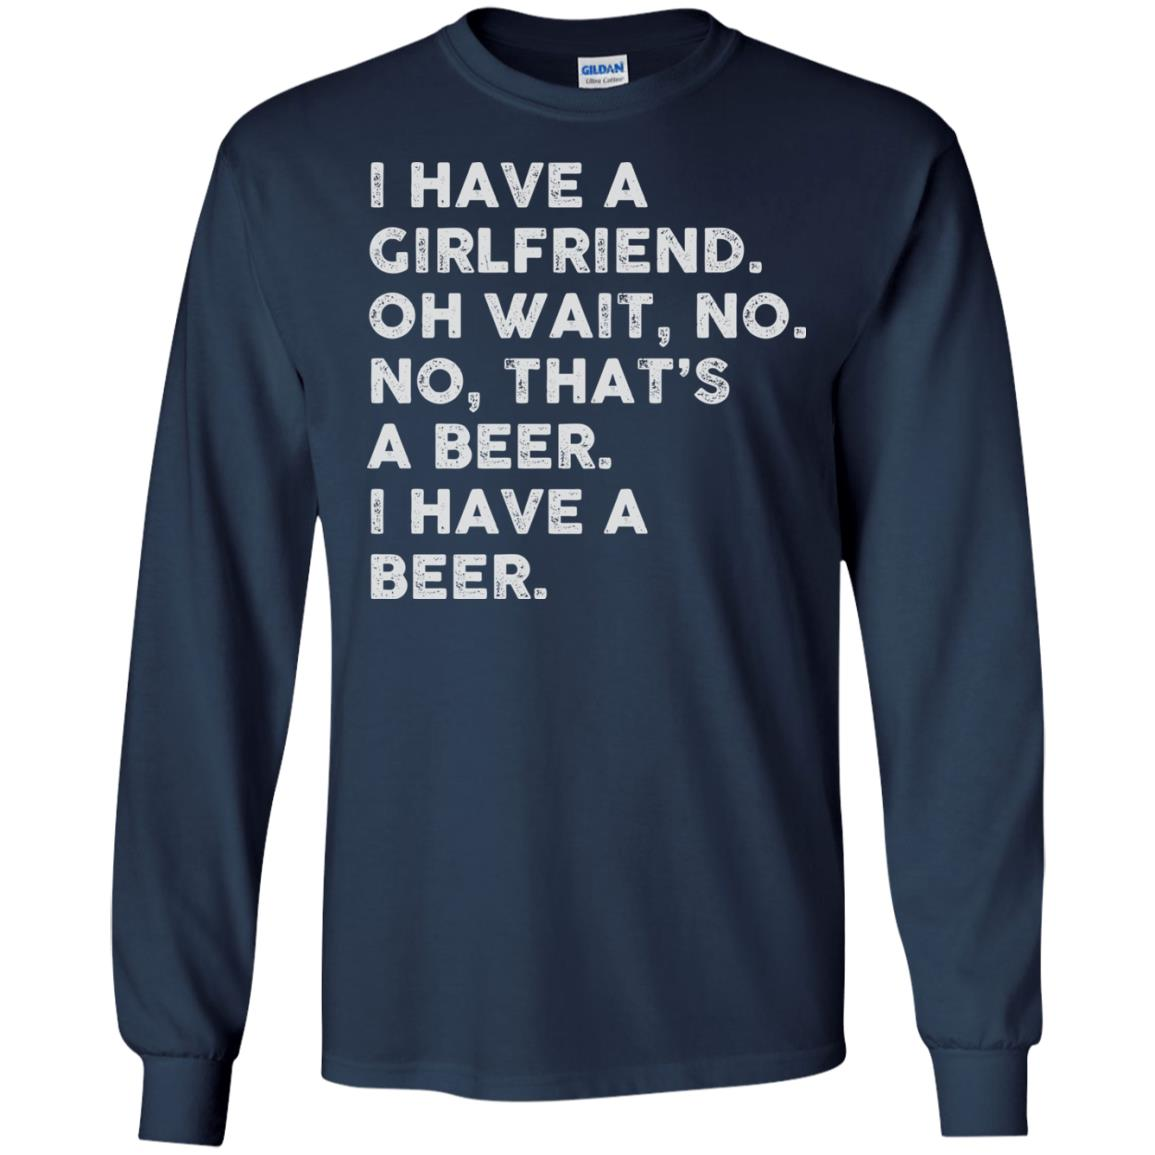 image 2182 - I have a girlfriend oh wait No No that's a beer shirt, hoodie